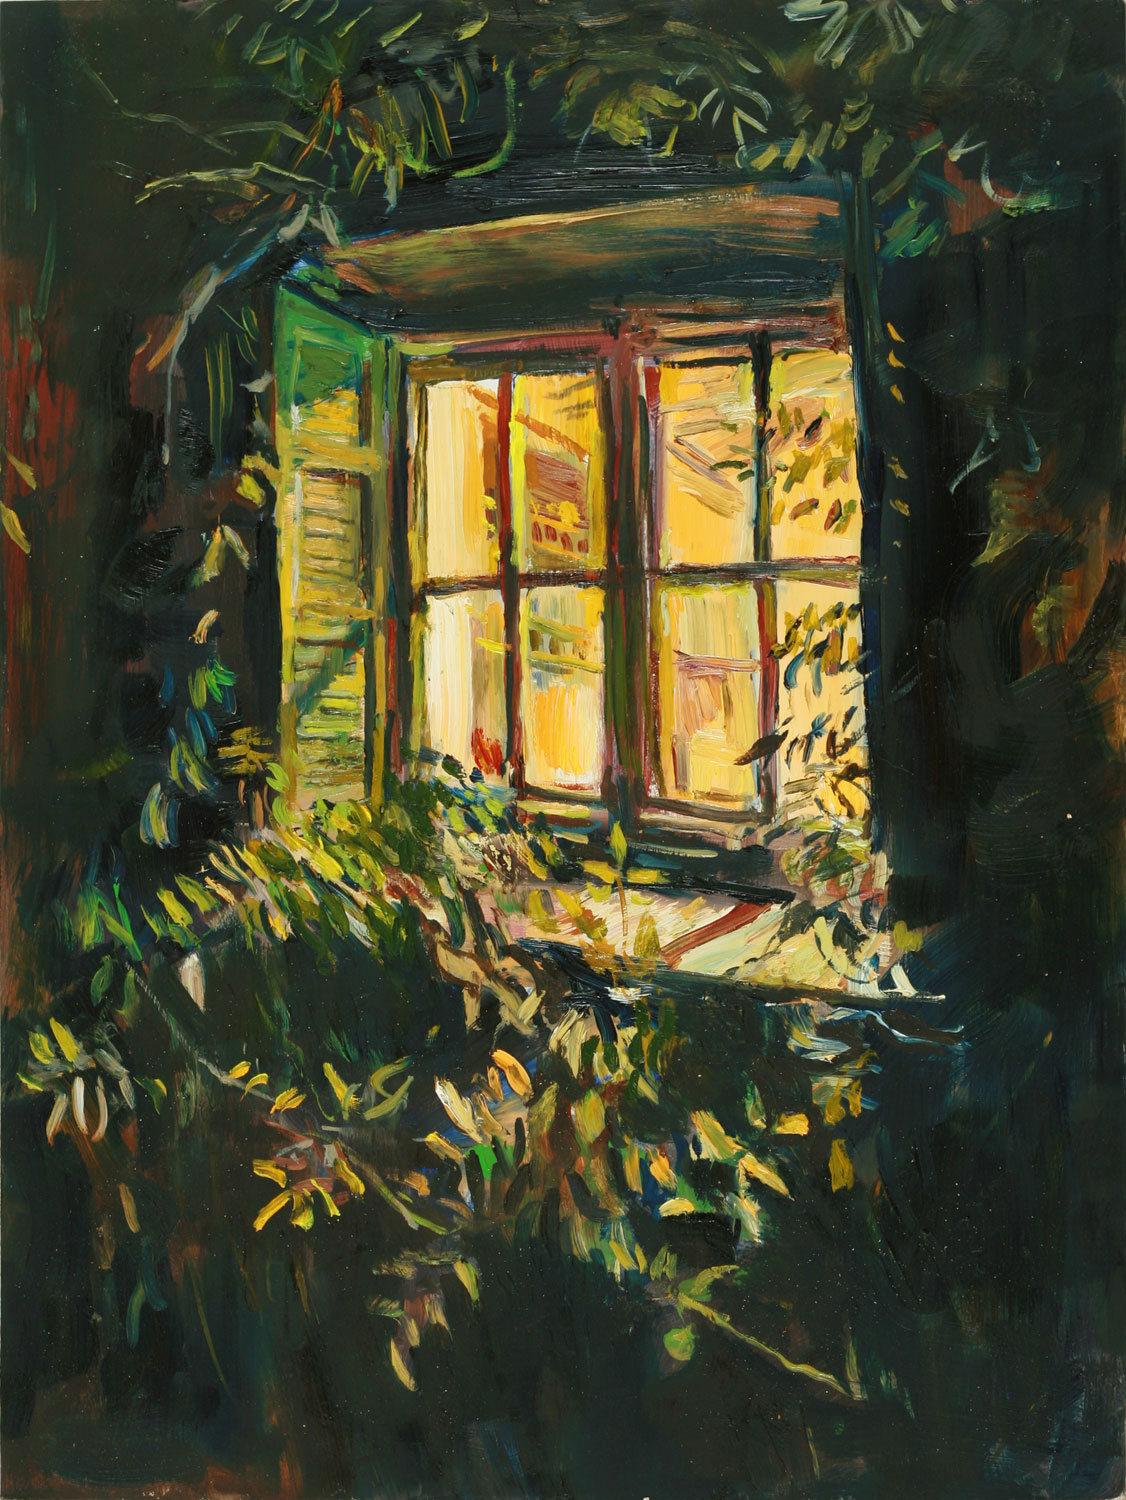 This Interior Exterior Contrast Painting Reminded Me Of A Previous Called Kitchen Window At Night Painted Outside Looking In On Trip To Provence After